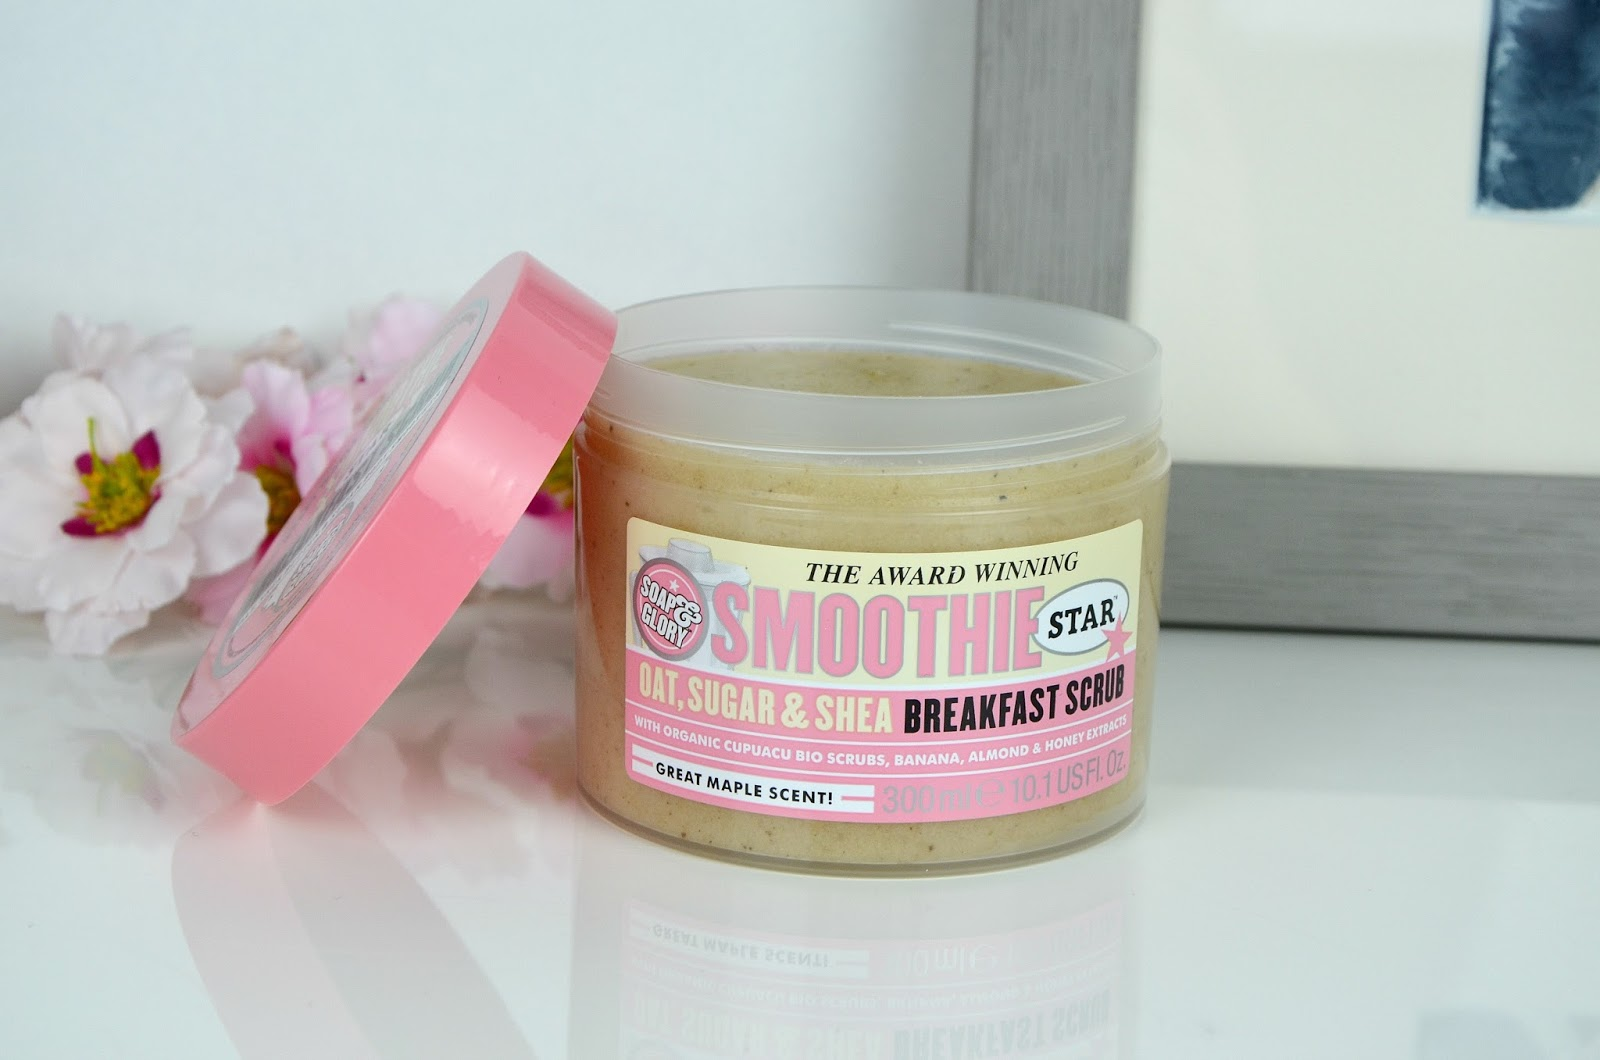 Smoothie star breakfast scrub soap and glory